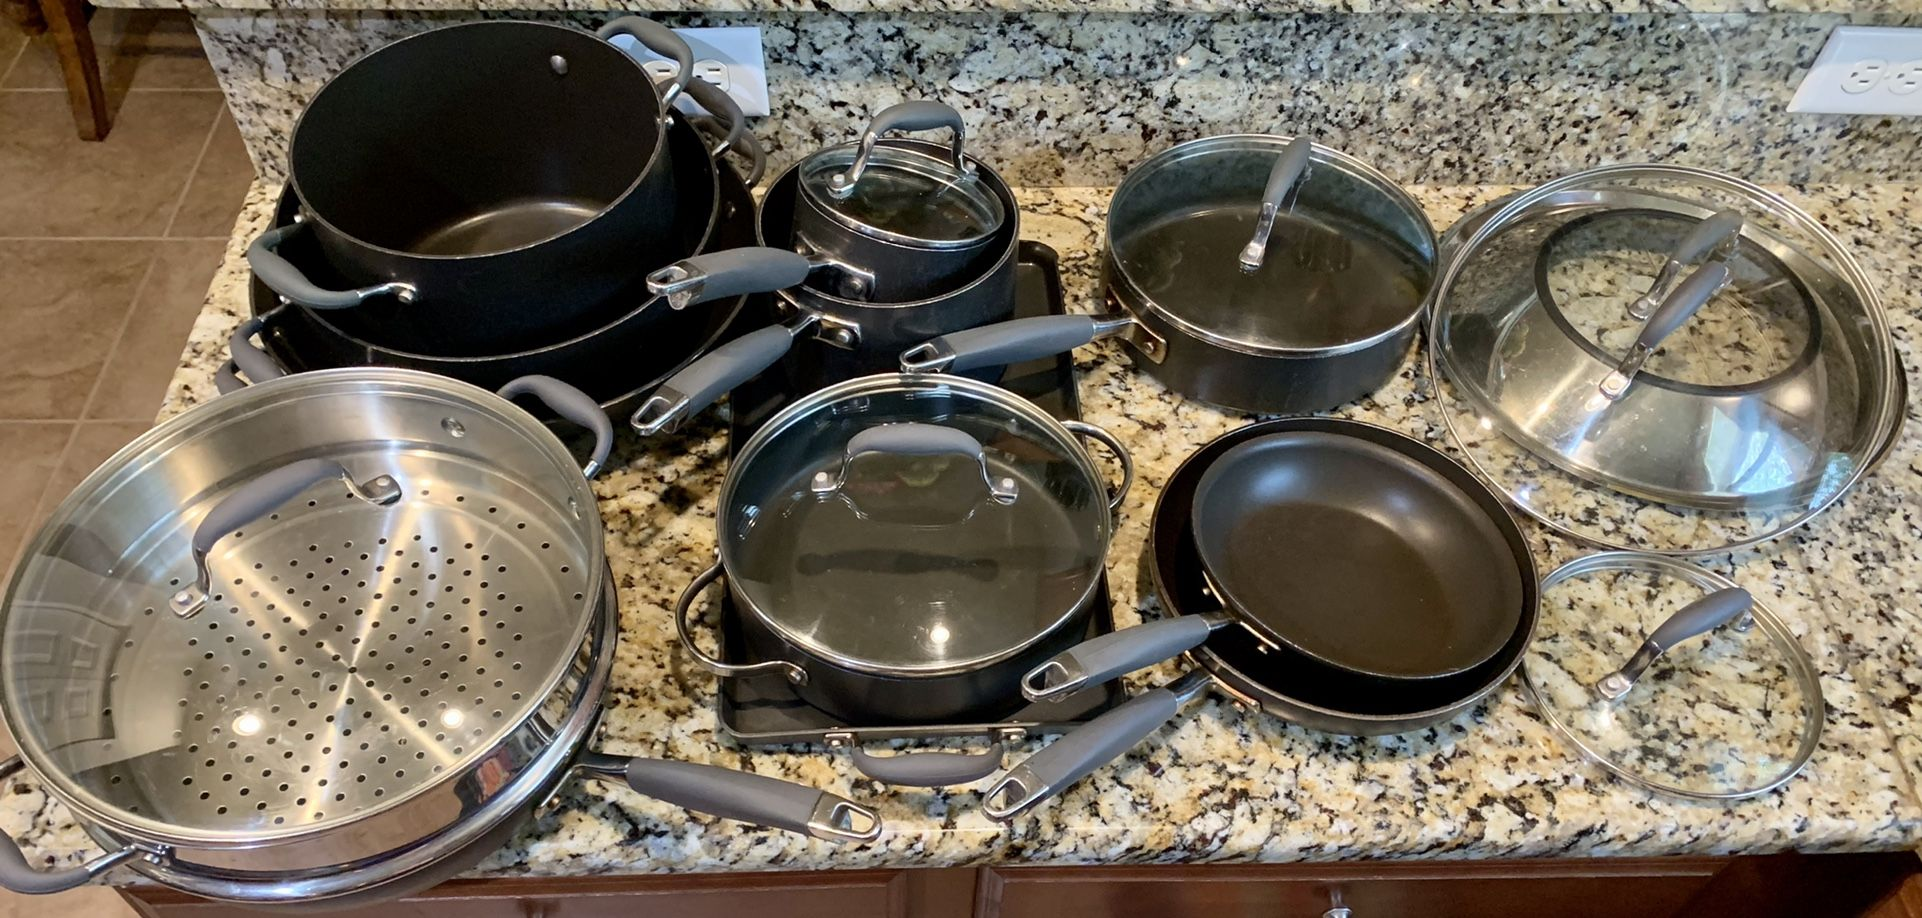 Anolon Advanced Home Hard-Anodized Nonstick Cookware Set in Moonstone Pots And Pans     Excellent condition!!!